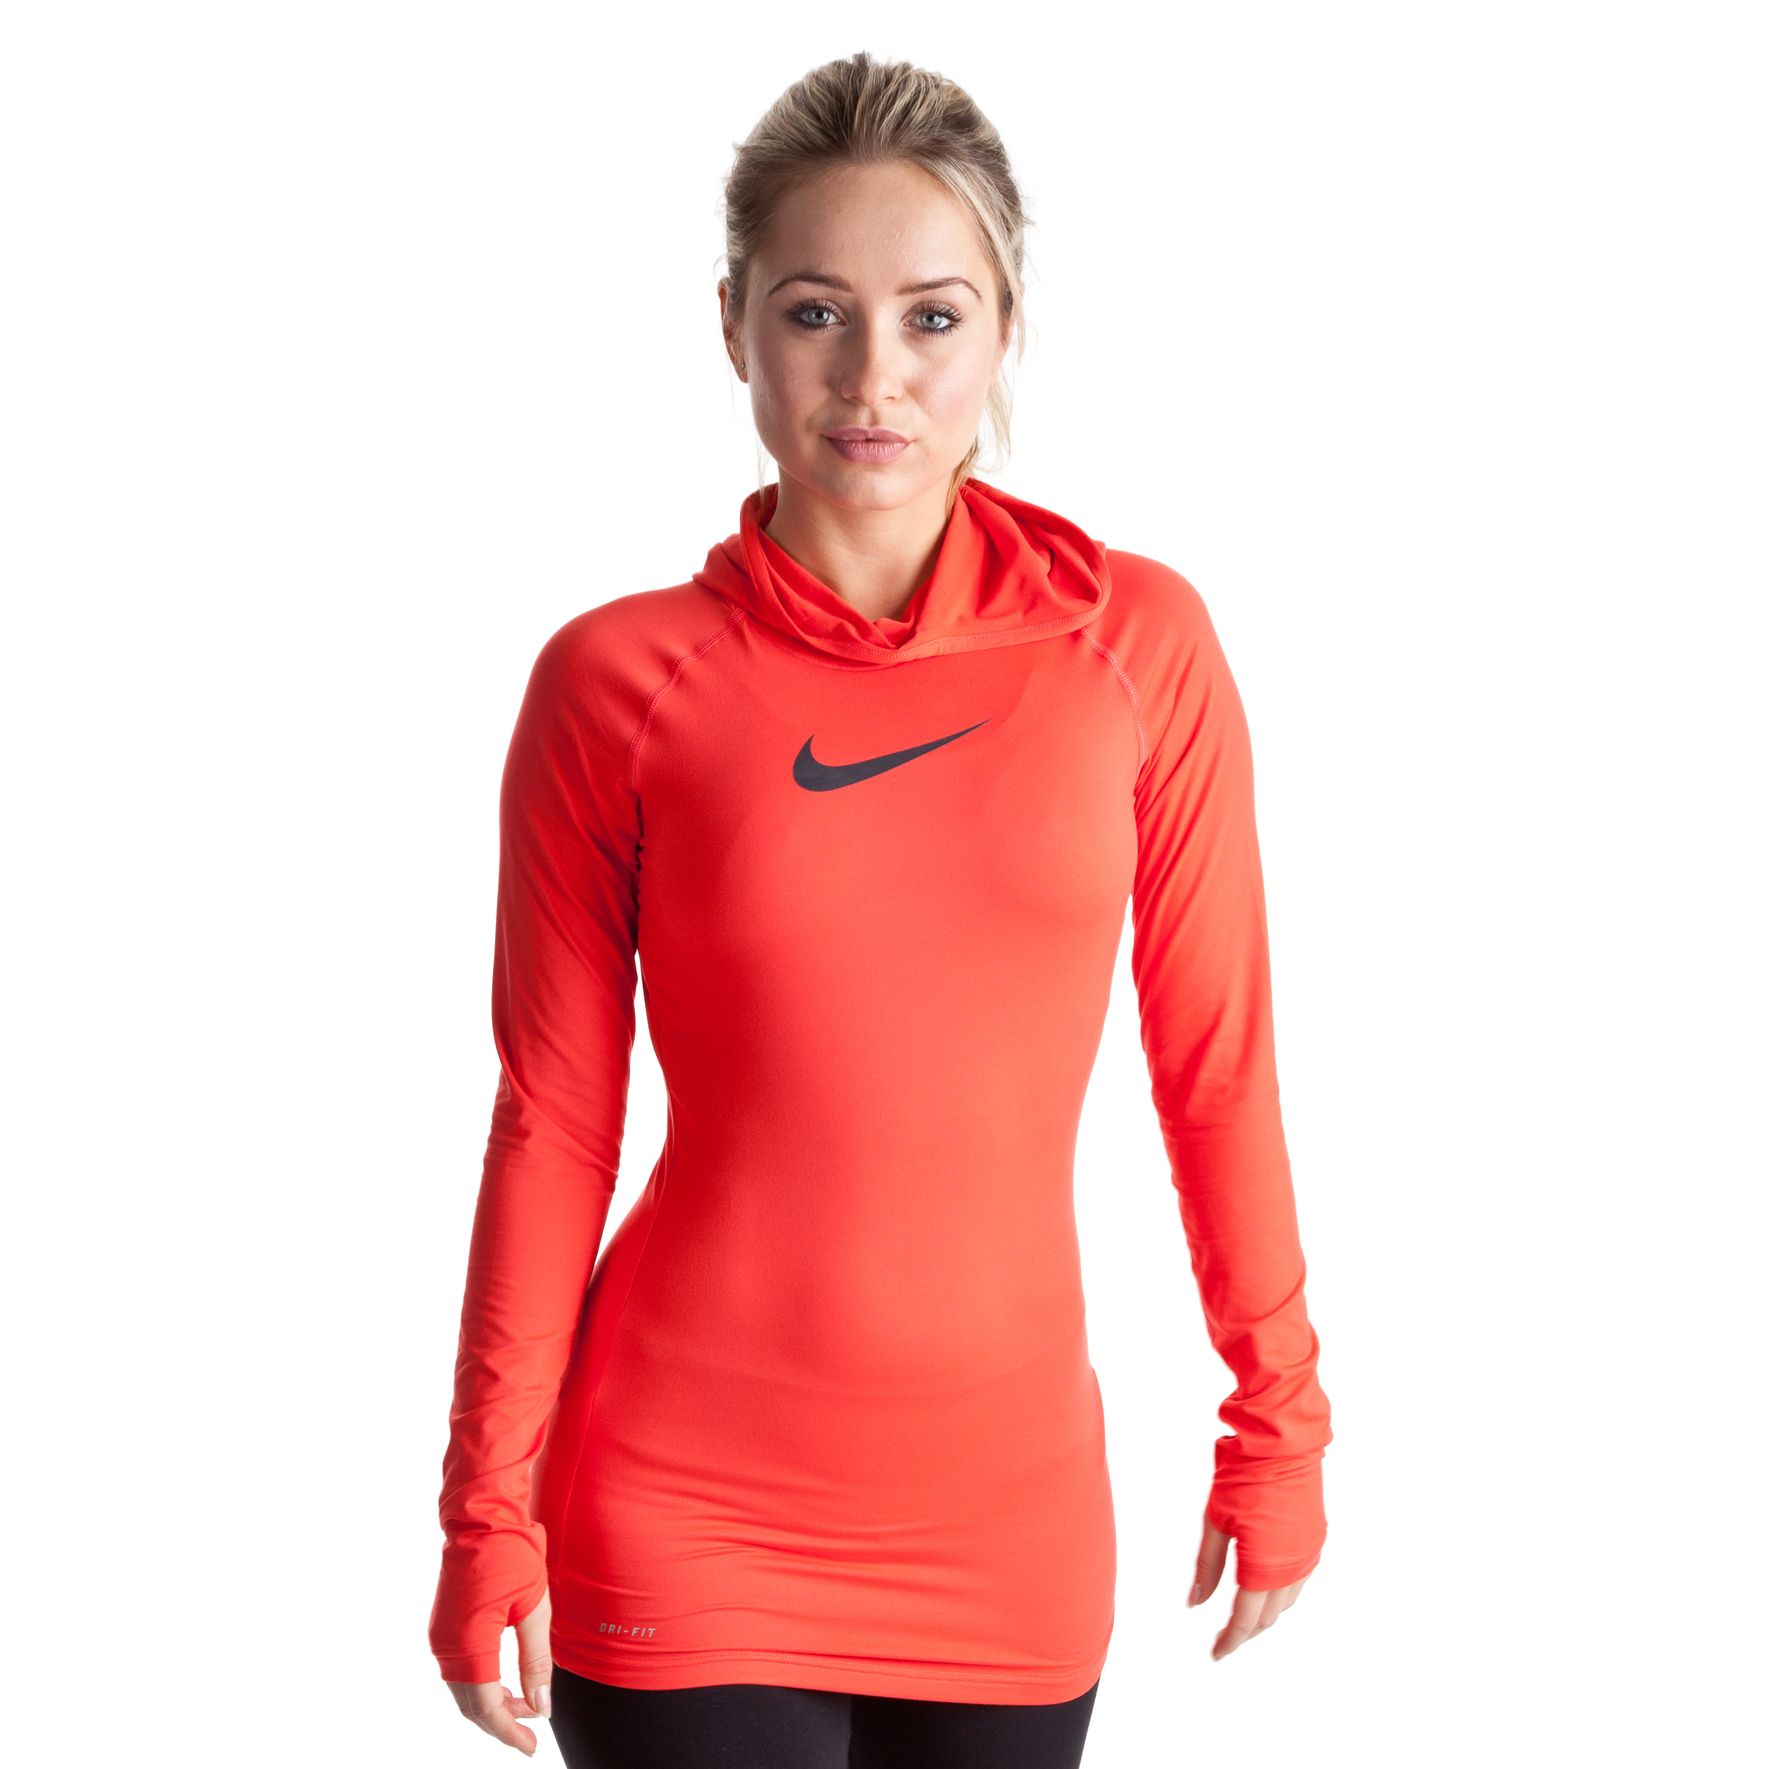 Nike Slim Sculpt Hoody - Sunburst/Anthracite - Womens